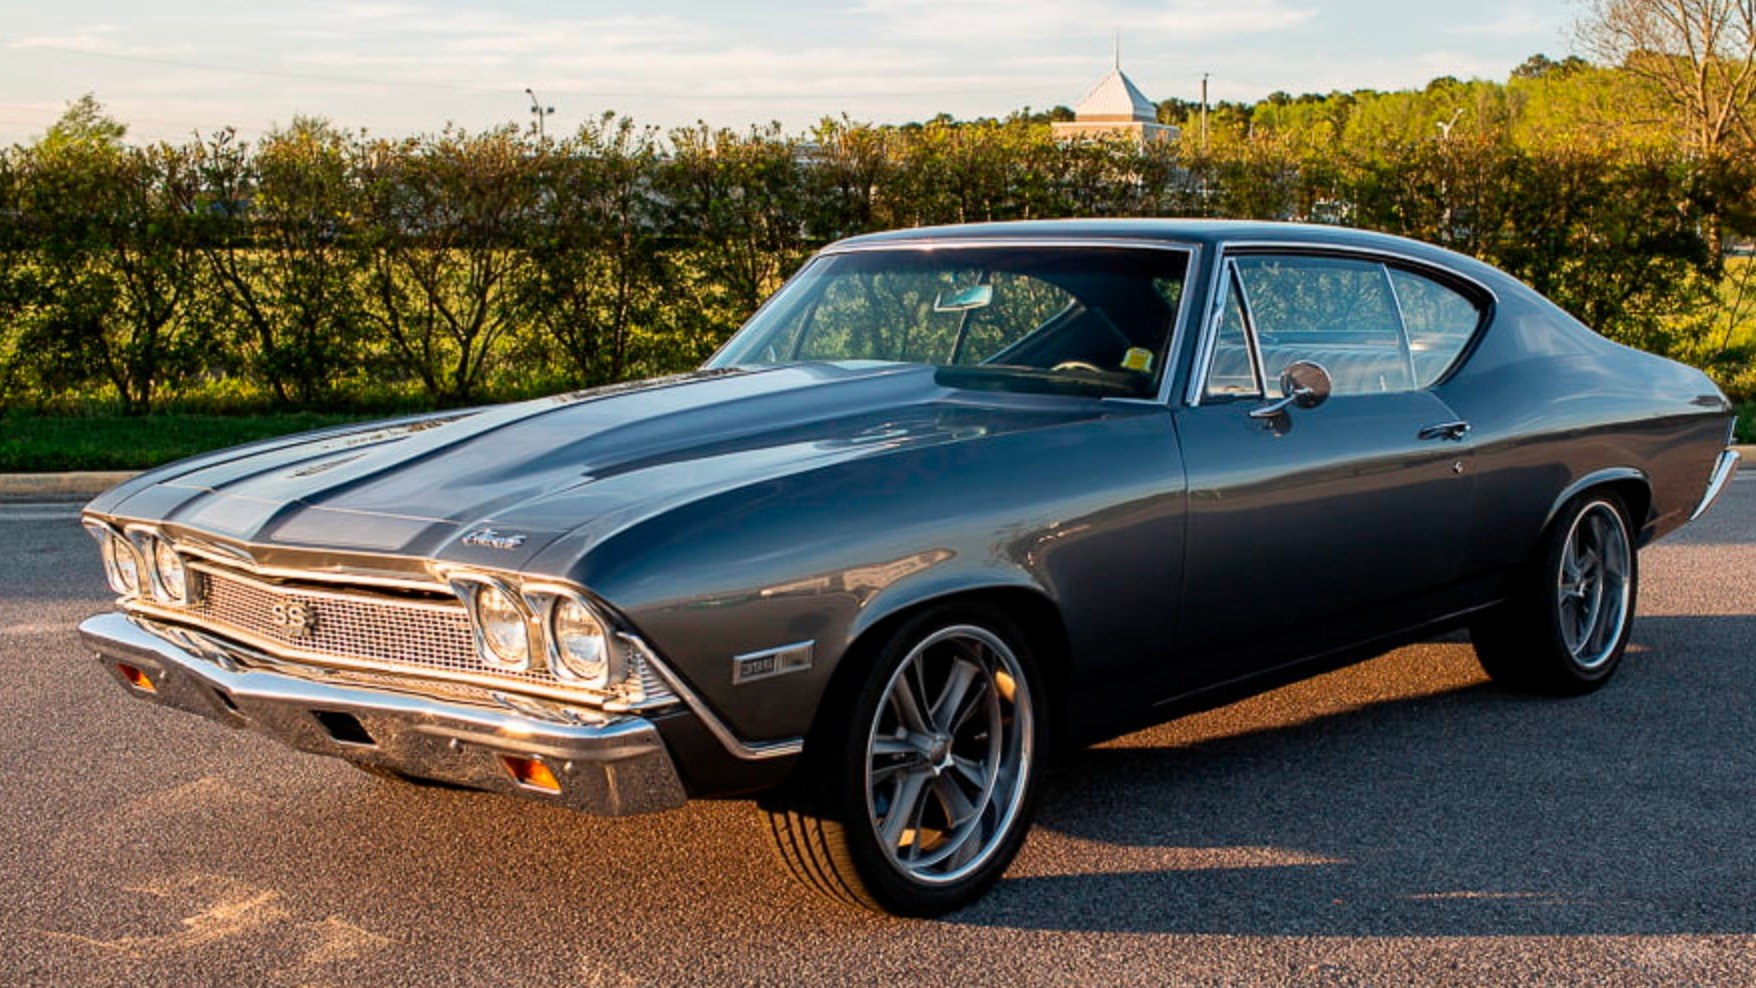 Used 1968 Chevrolet Chevelle -MULTIPLE SHOW WINNER-BIG BLOCK 454 POWERFUL ENGINE- | Mundelein, IL